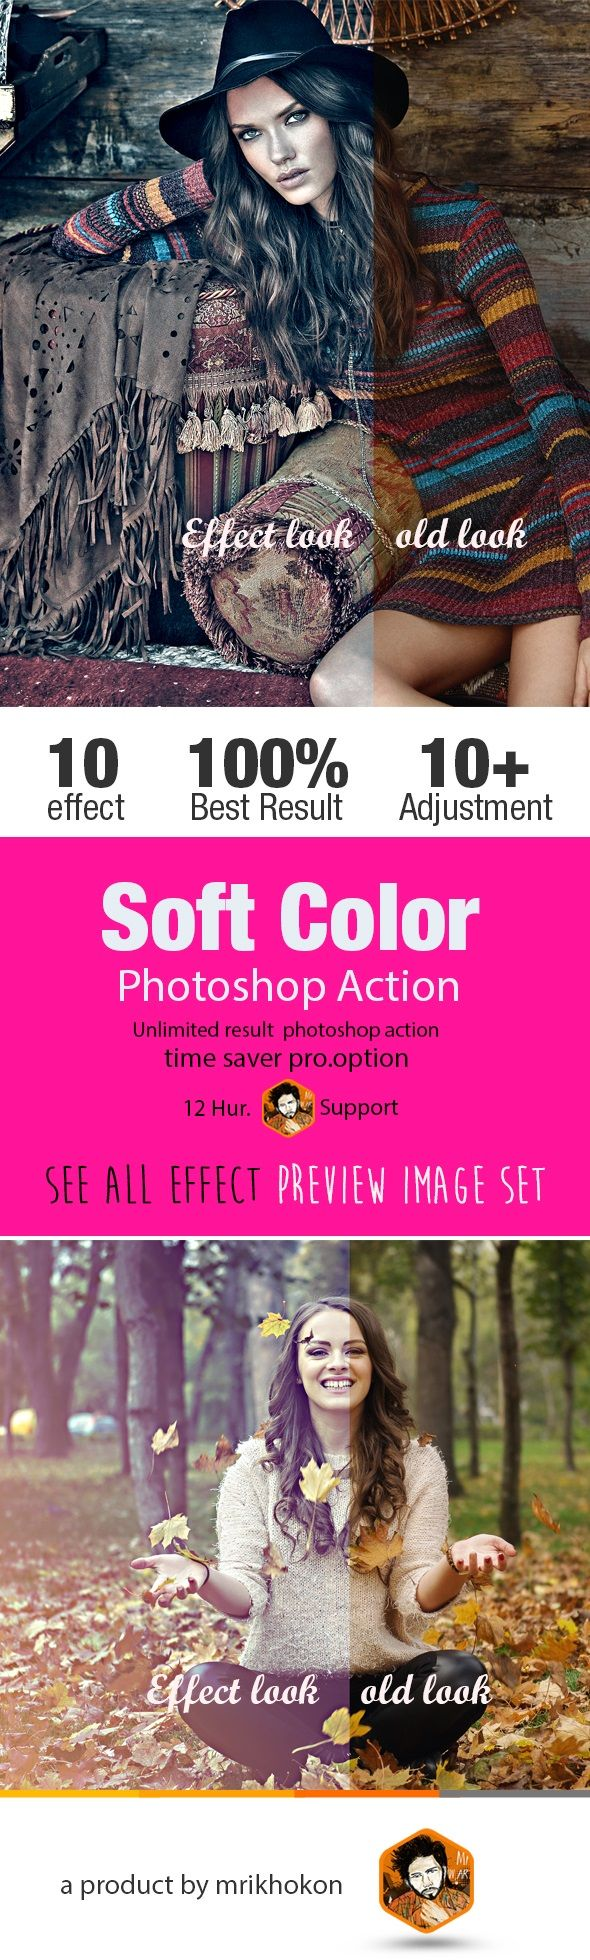 Soft Color Photoshop Action